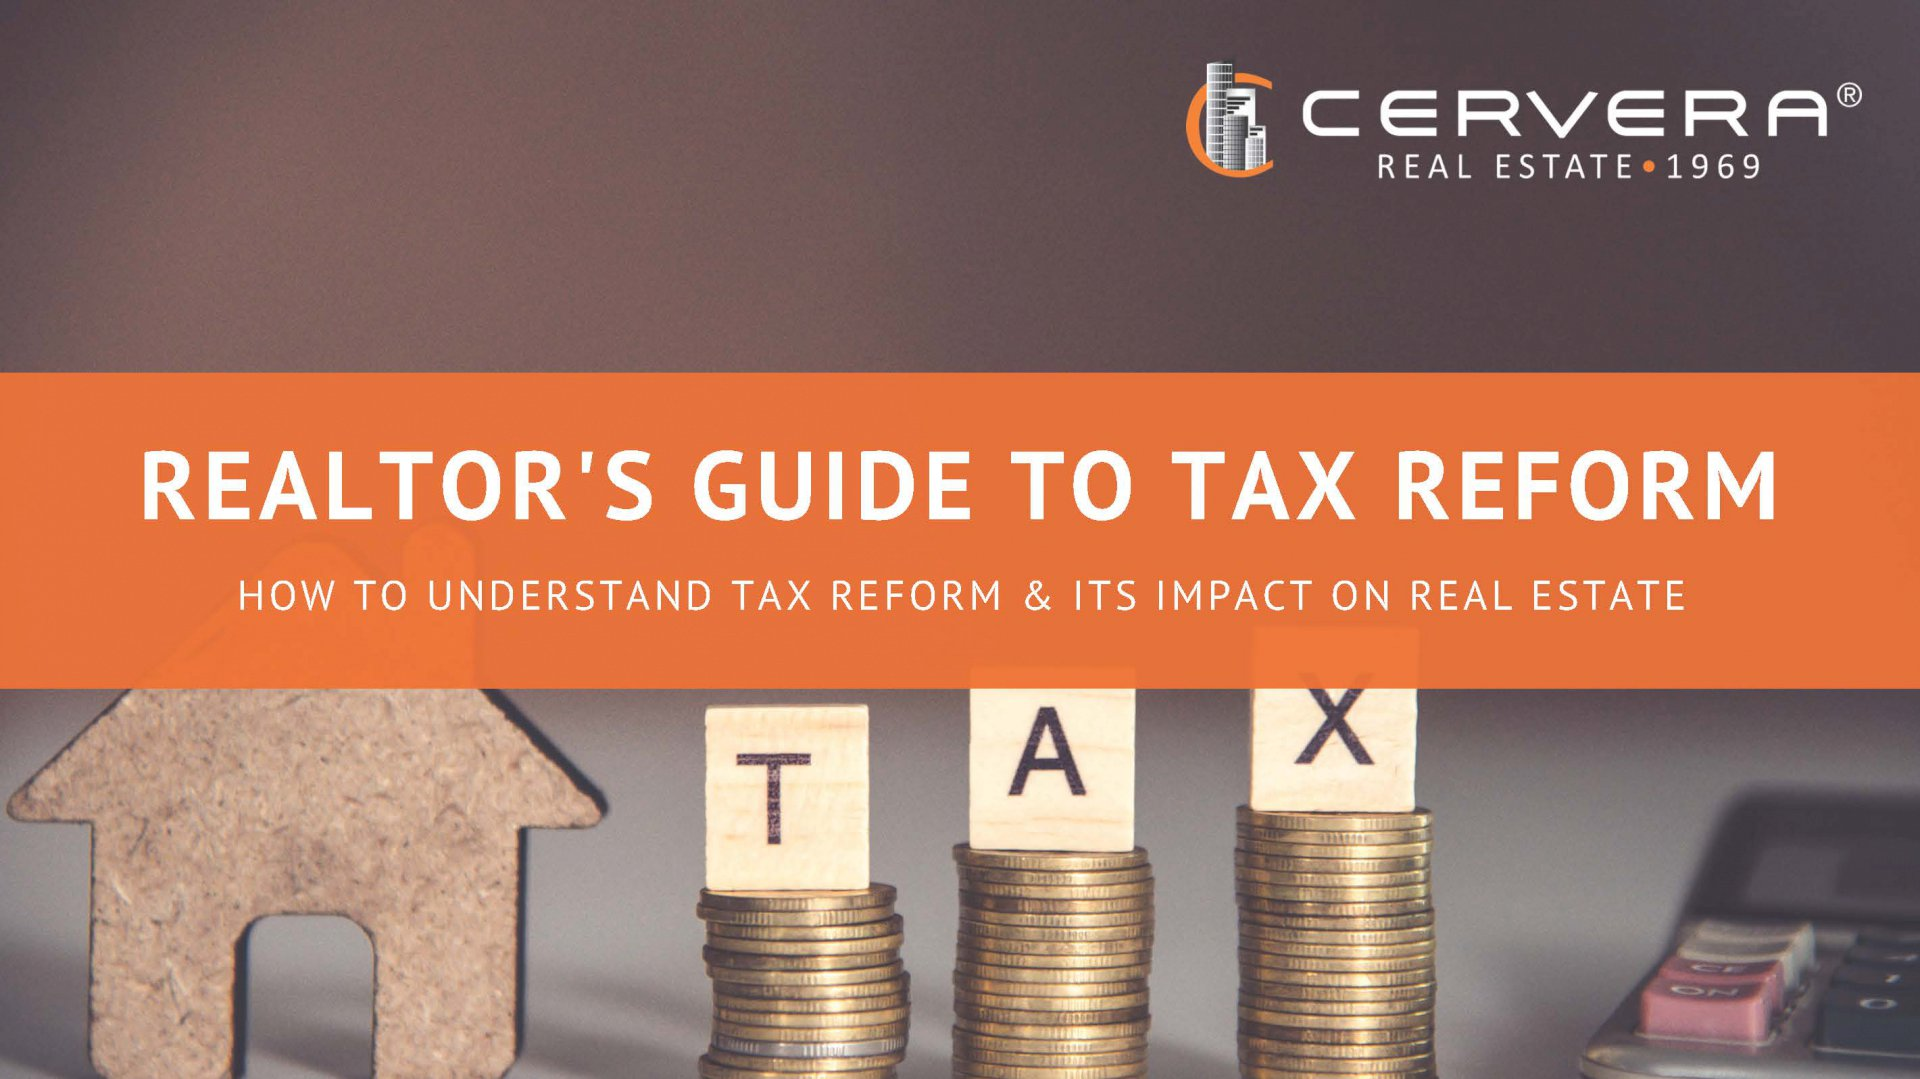 How To: Understand Tax Reform & Its Impact on Real Estate